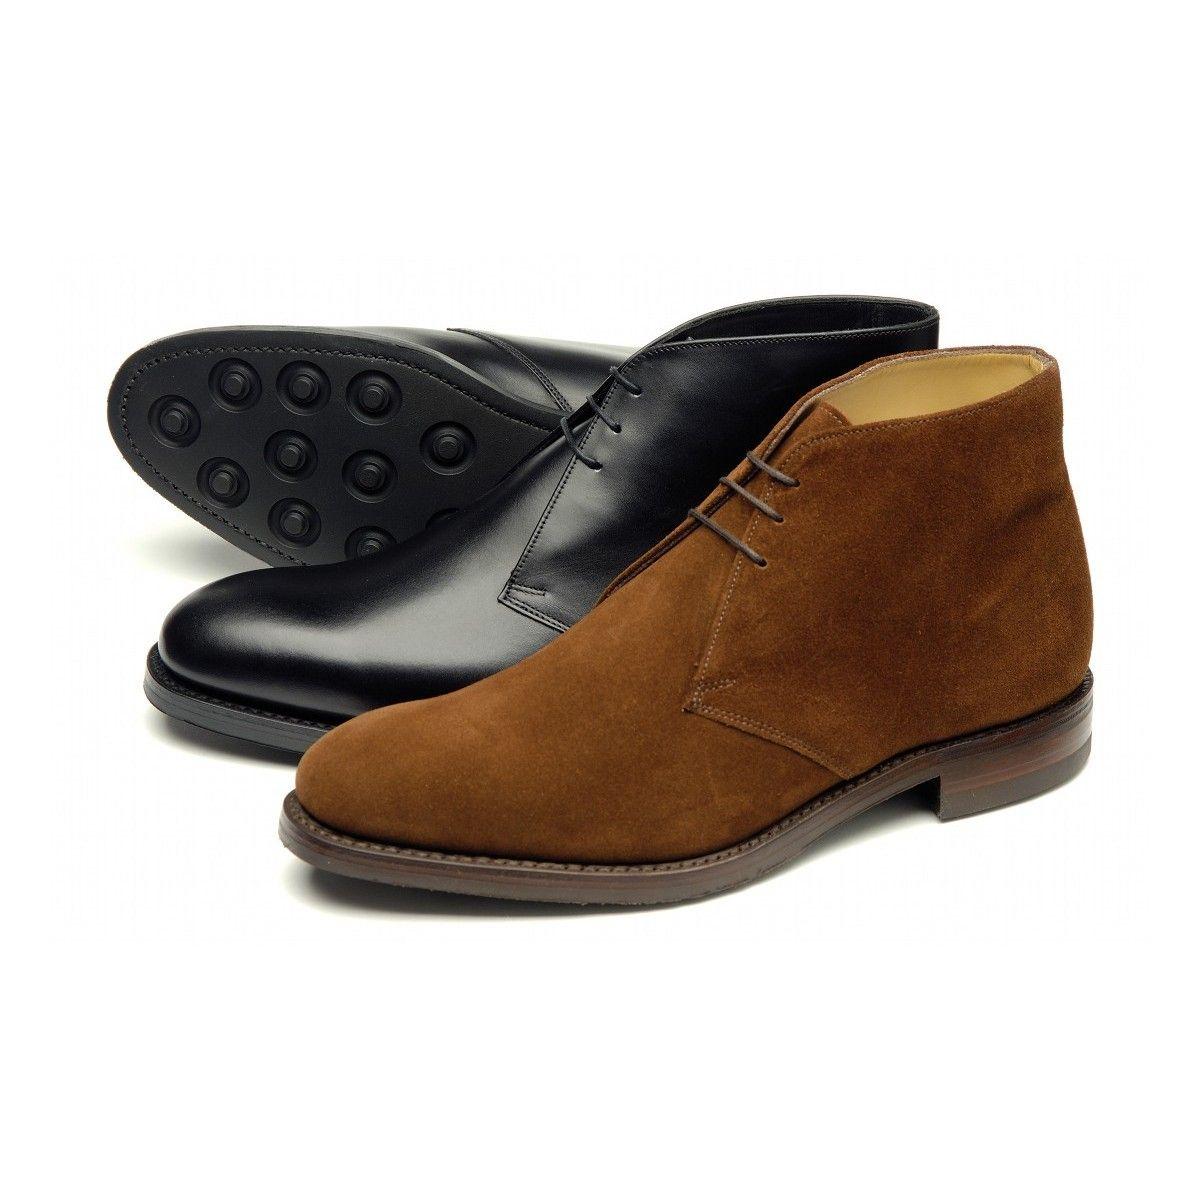 Loake Kempton Dainite Sole